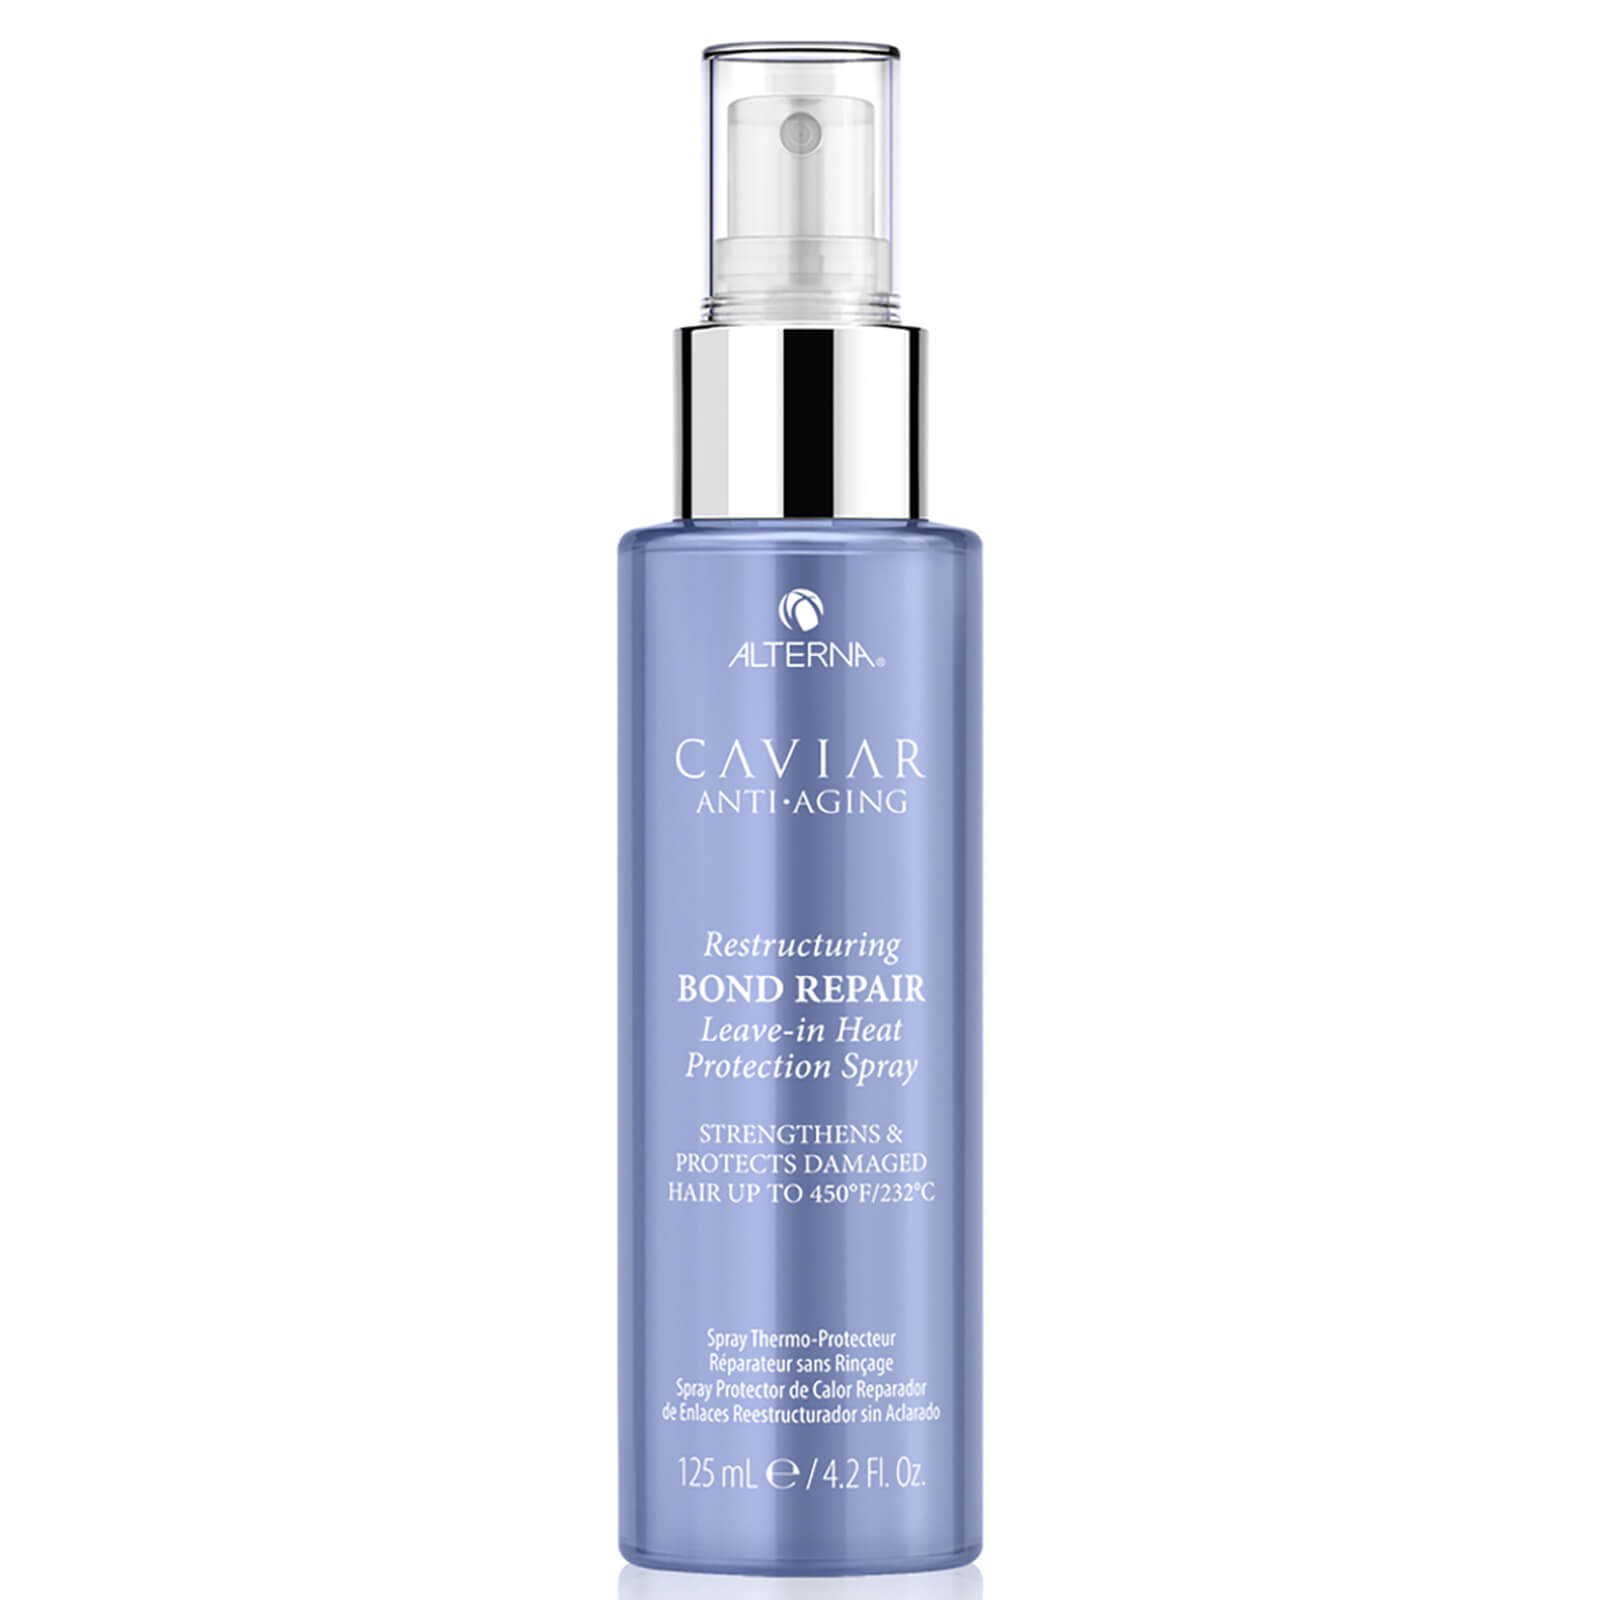 ed69a85aed1 Alterna Caviar Anti-Aging Restructuring Bond Repair Leave-In Heat  Protection Spray